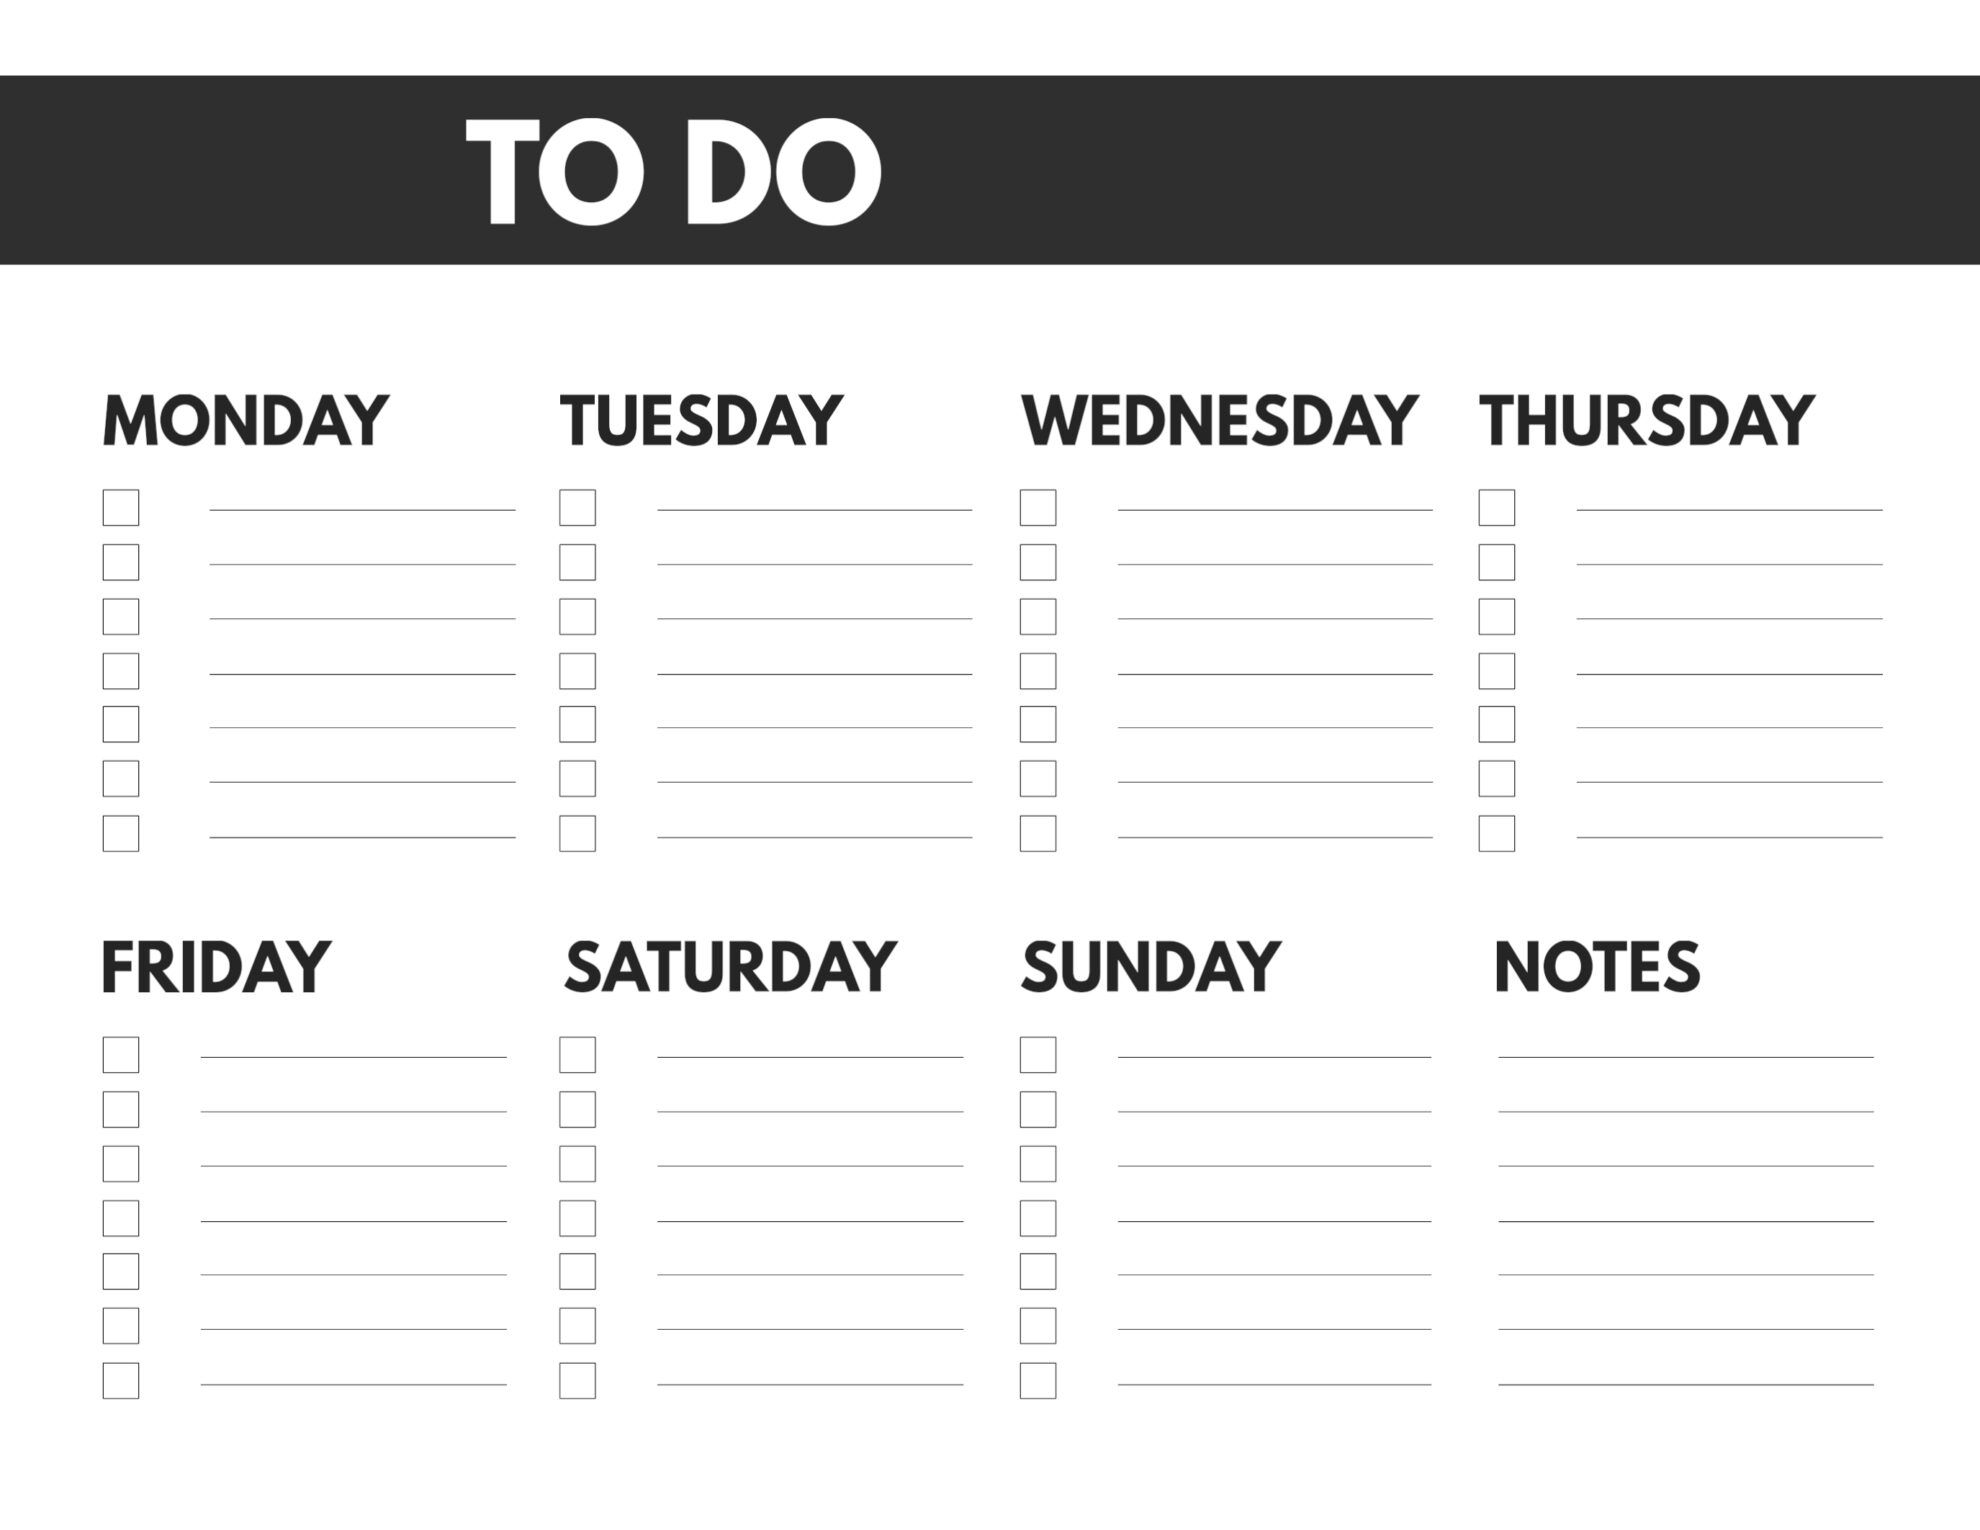 Free Printable Weekly To Do List - Paper Trail Design